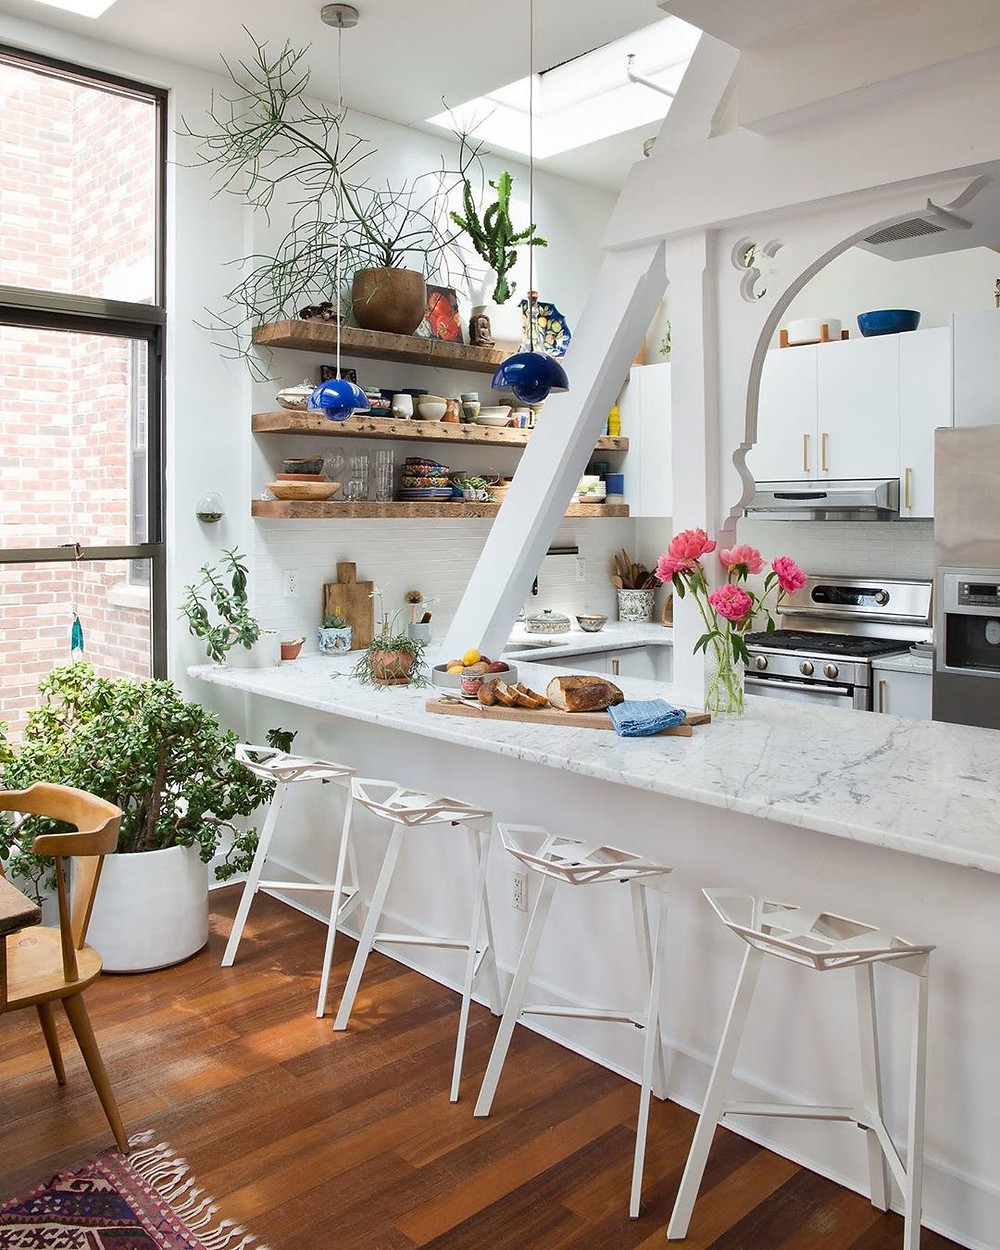 white kitchen with wooden flooring and shelves decorated with food and appliances